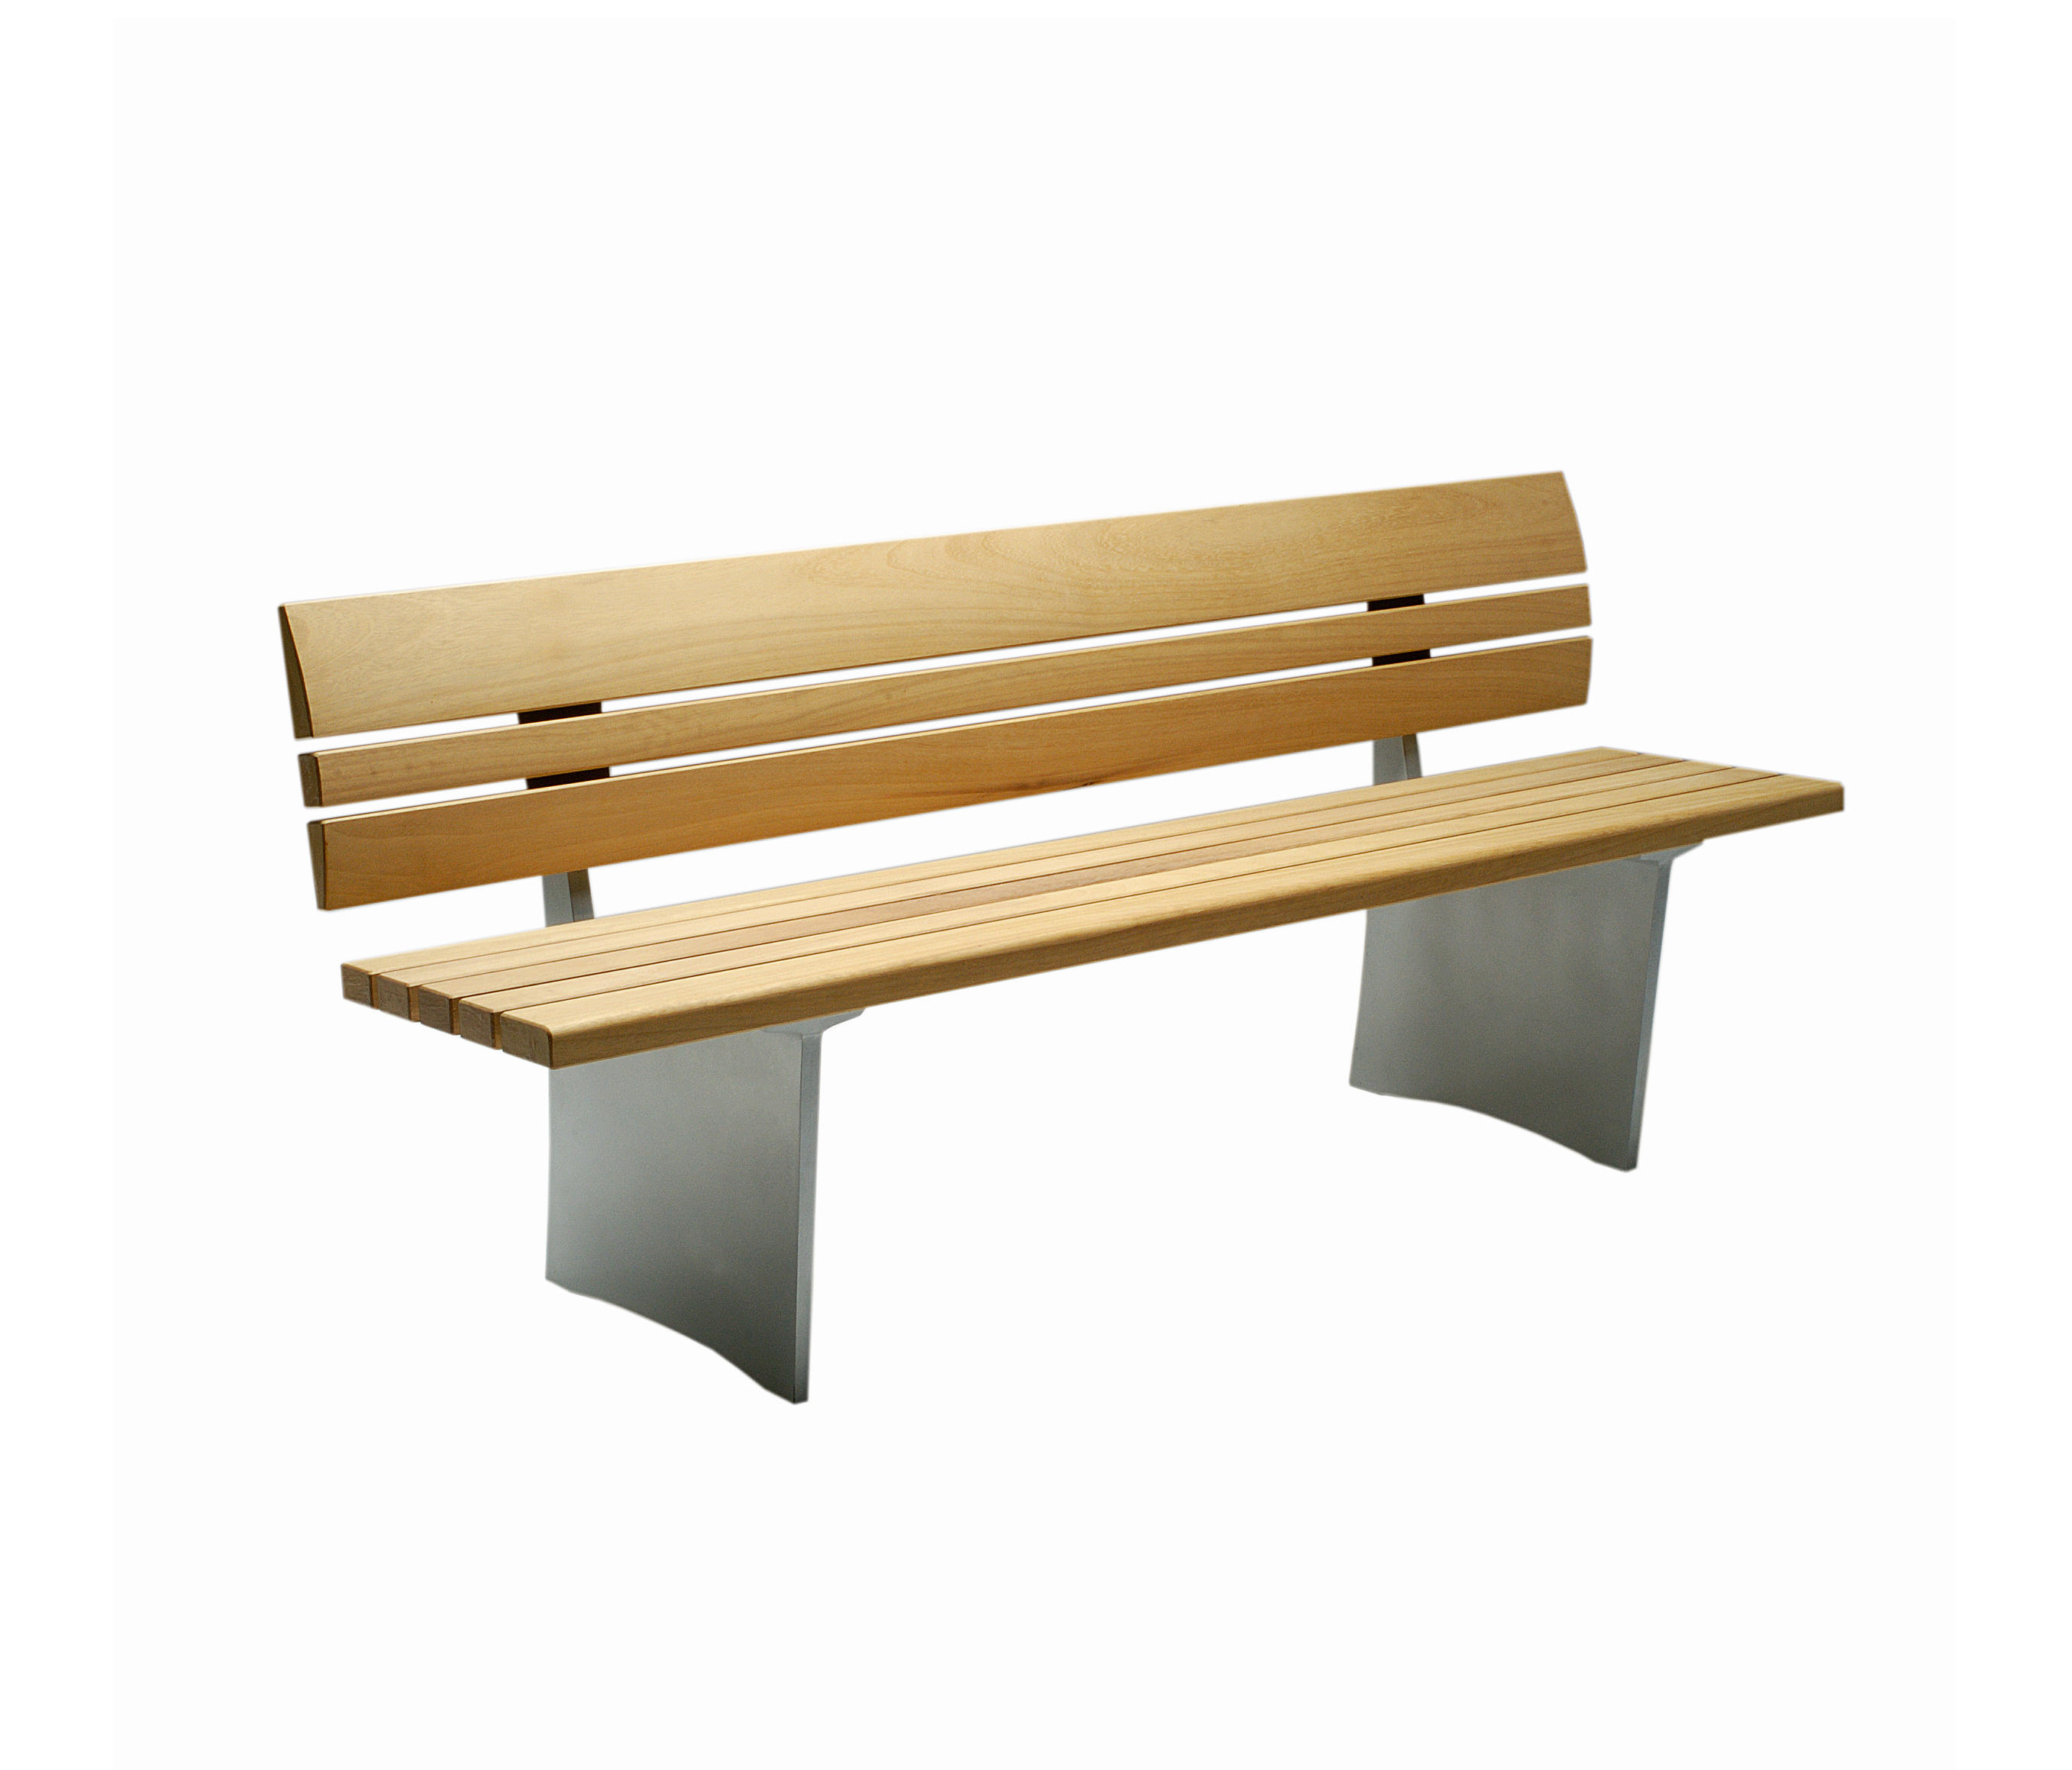 Delightful Norfolk Full Bench By Benchmark Furniture | Exterior Benches ...